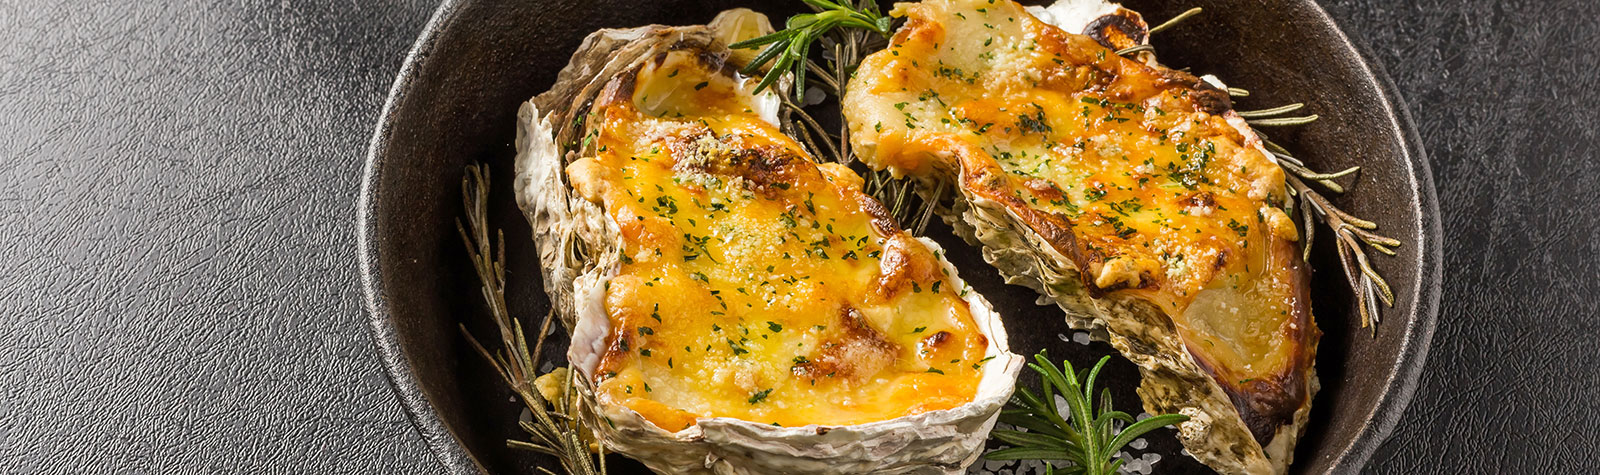 Baked Oysters Gratin